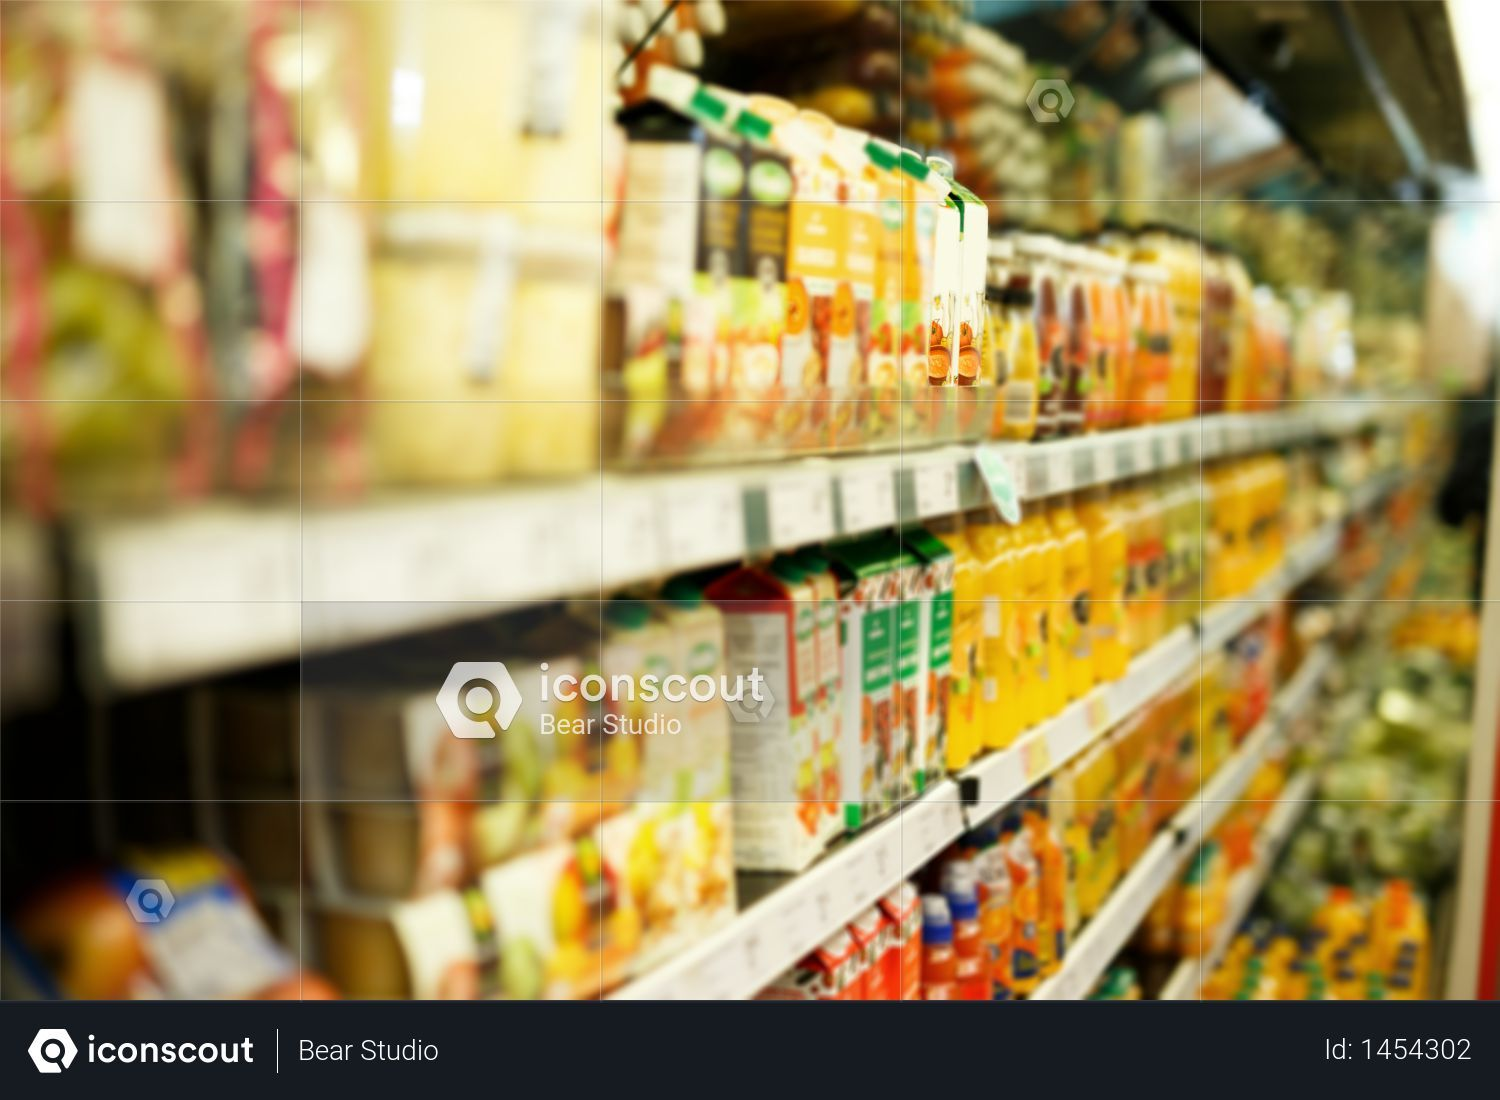 Premium Image Of Shelves With Different Grocery Products In The Supermarket Photo Download In Png Jpg Format Grocery Supermarket Drink Photo